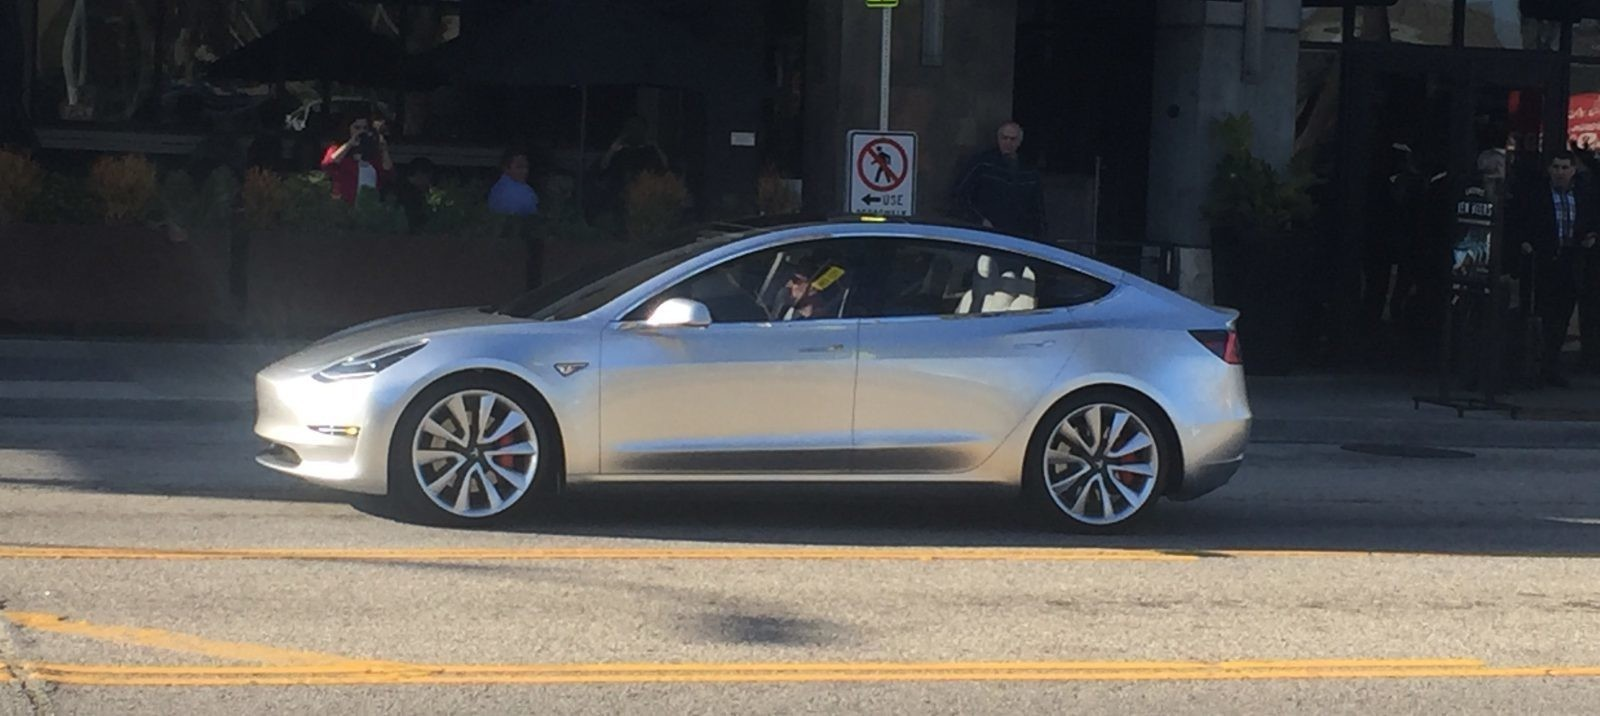 Exclusive: Tesla is testing a Model 3 mule with a 70 kWh battery pack and dual motors (Model 3 70D)